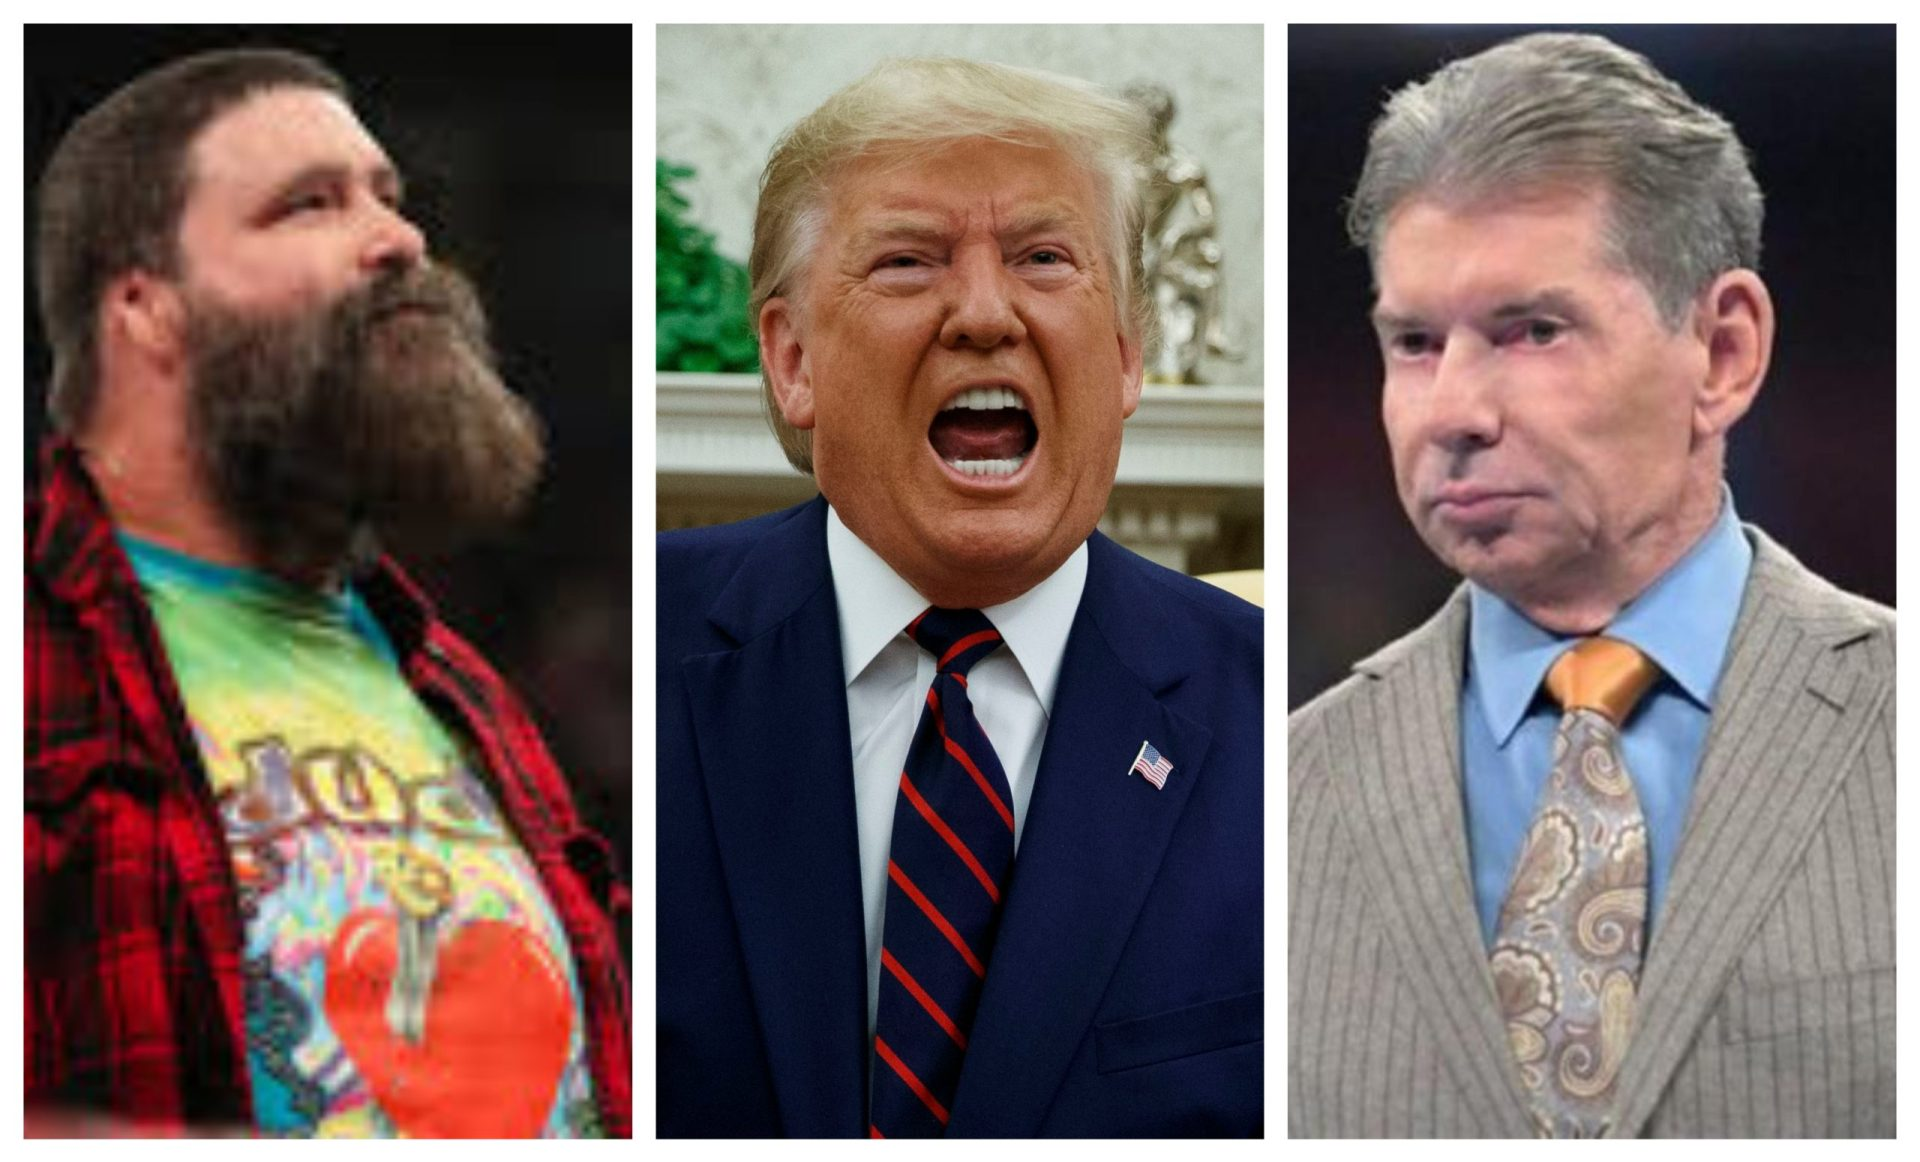 Mick Foley wants Vince McMahon to remove Donald Trump from the WWE Hall Of Fame amid Capitol chaos - THE SPORTS ROOM